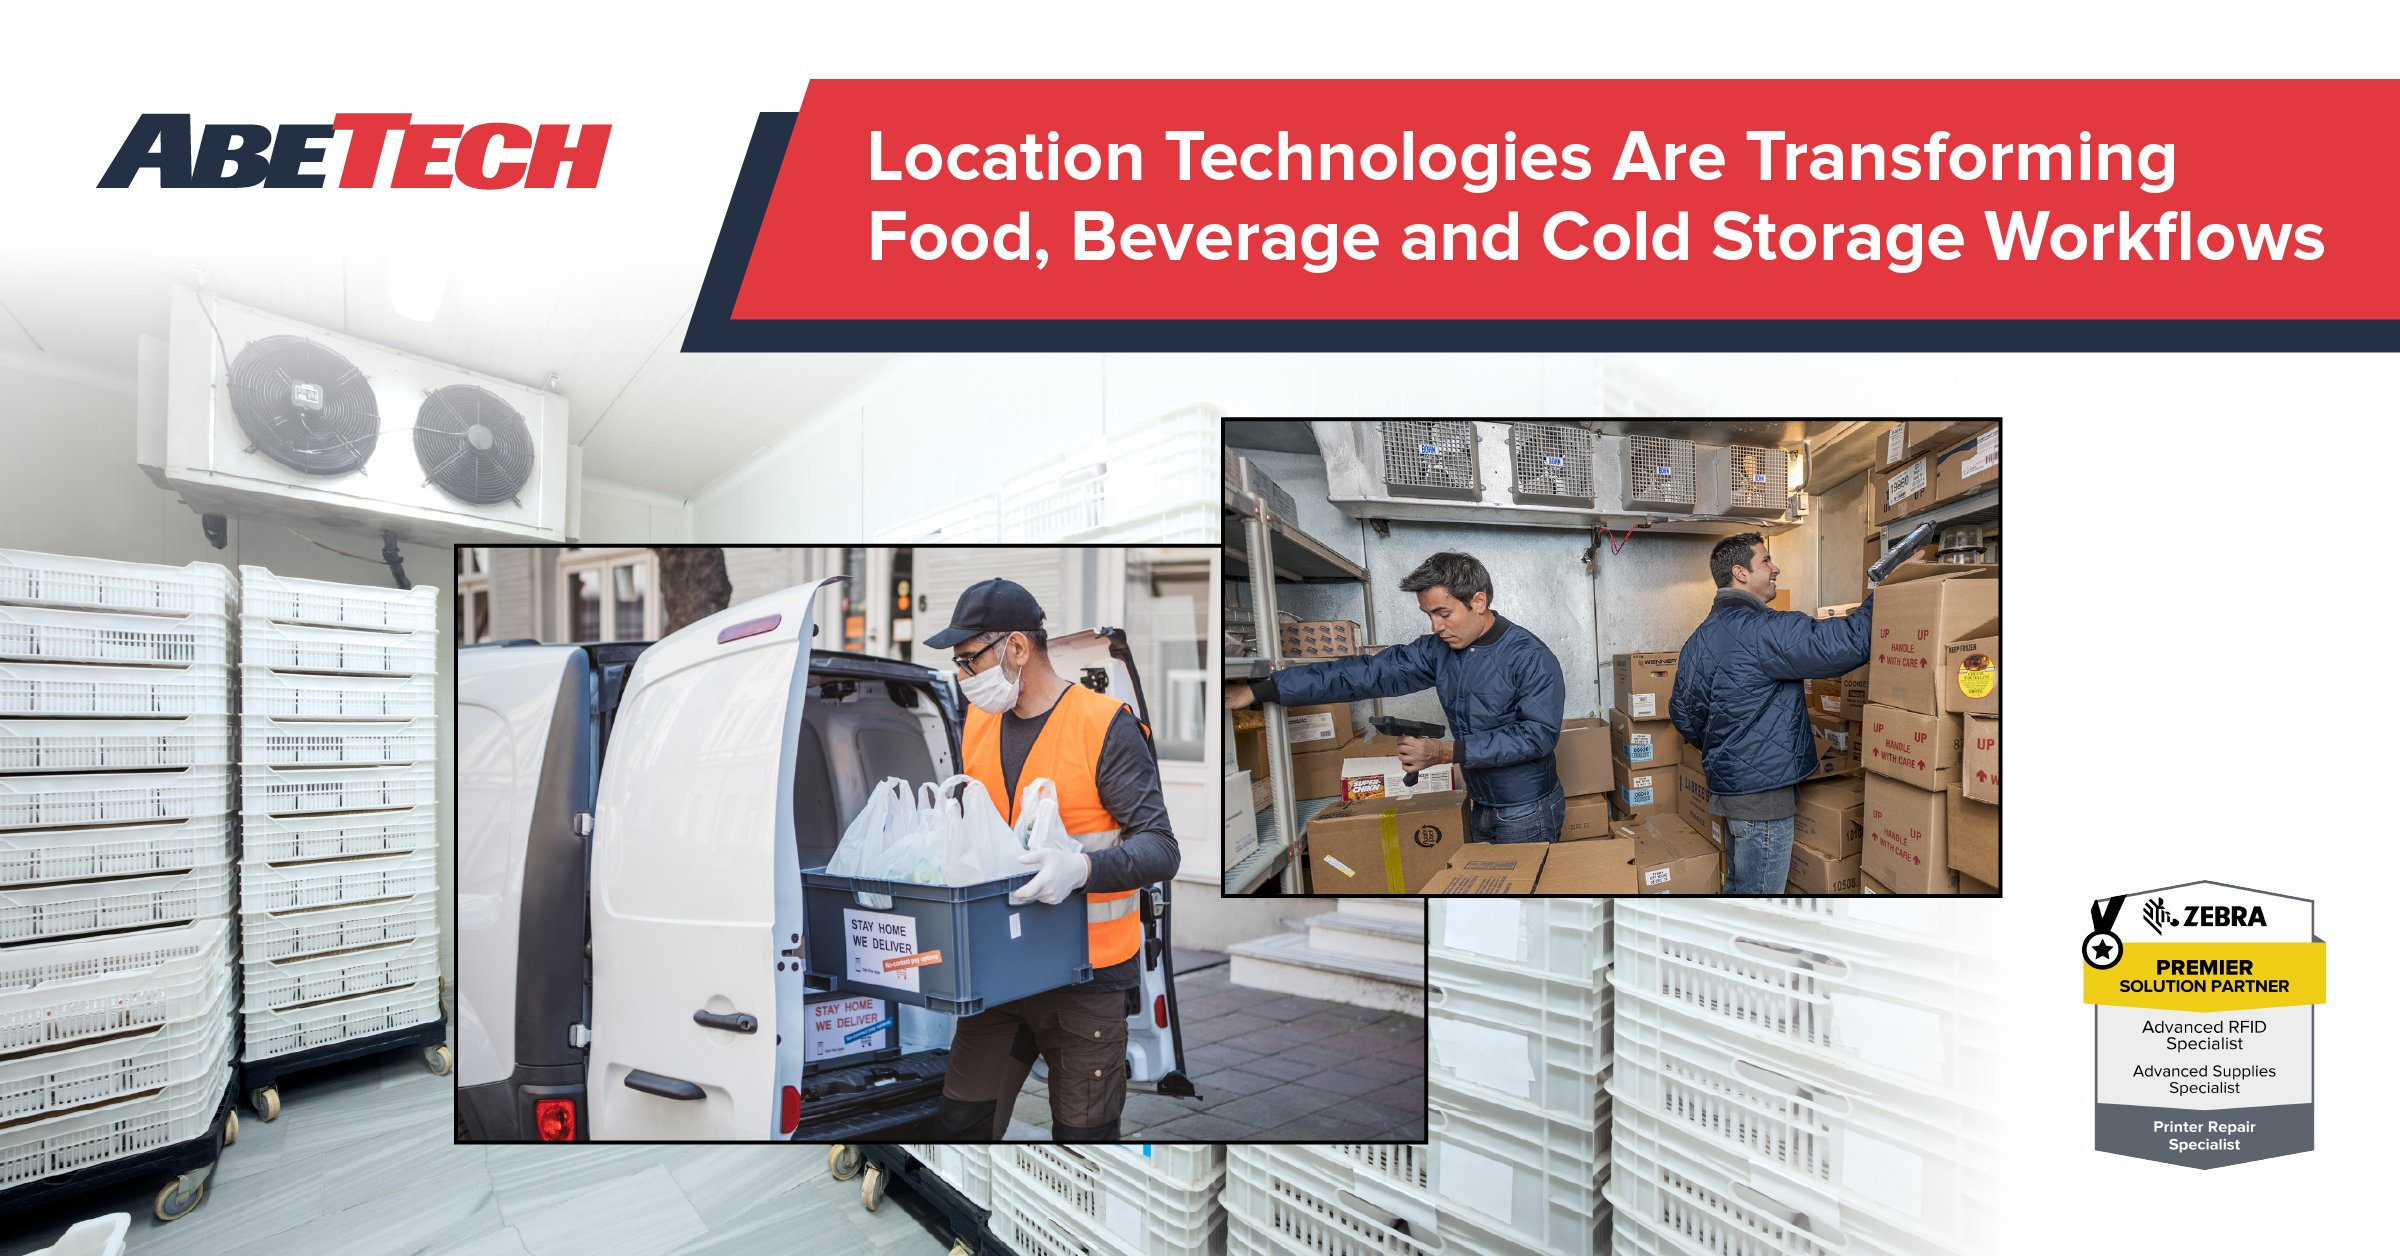 Location Technologies for Food and Beverage and Cold Storage